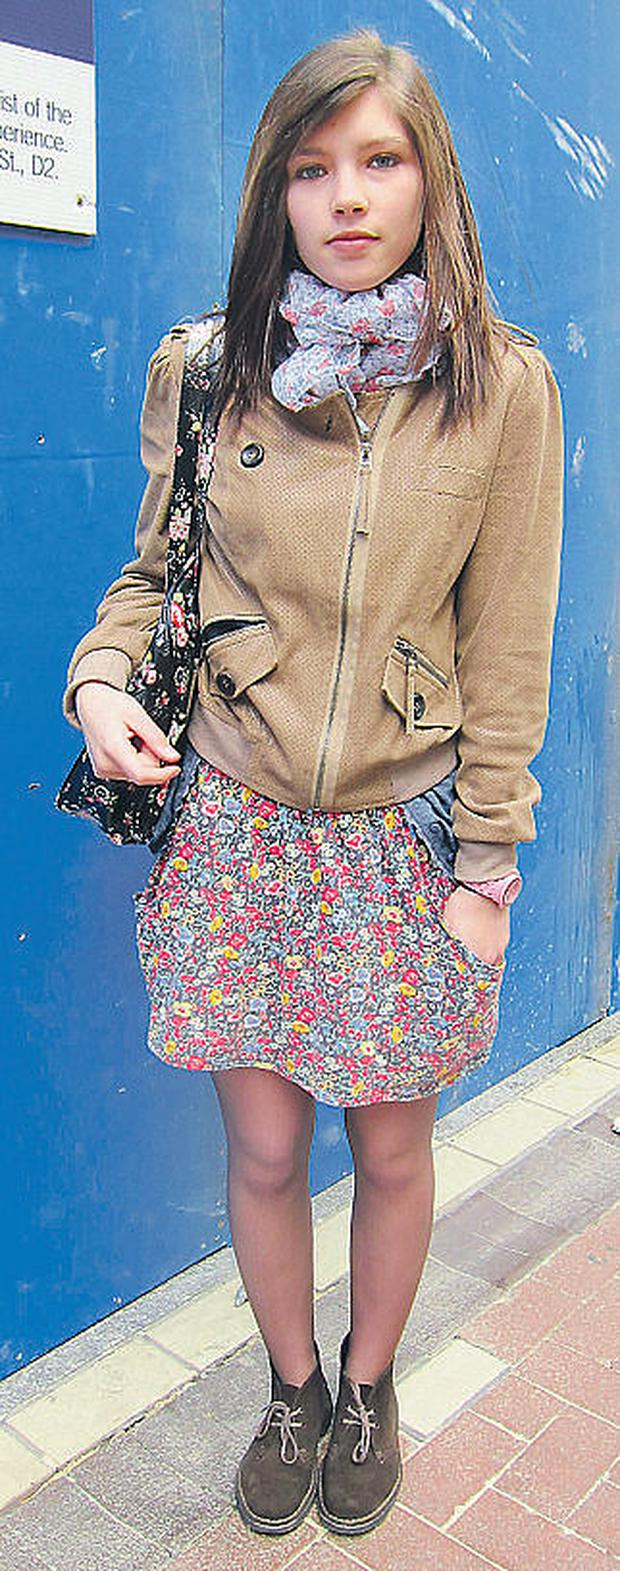 Anais works laid-back layers with her punched suede biker jacket, mixed florals and on-trend desert boots